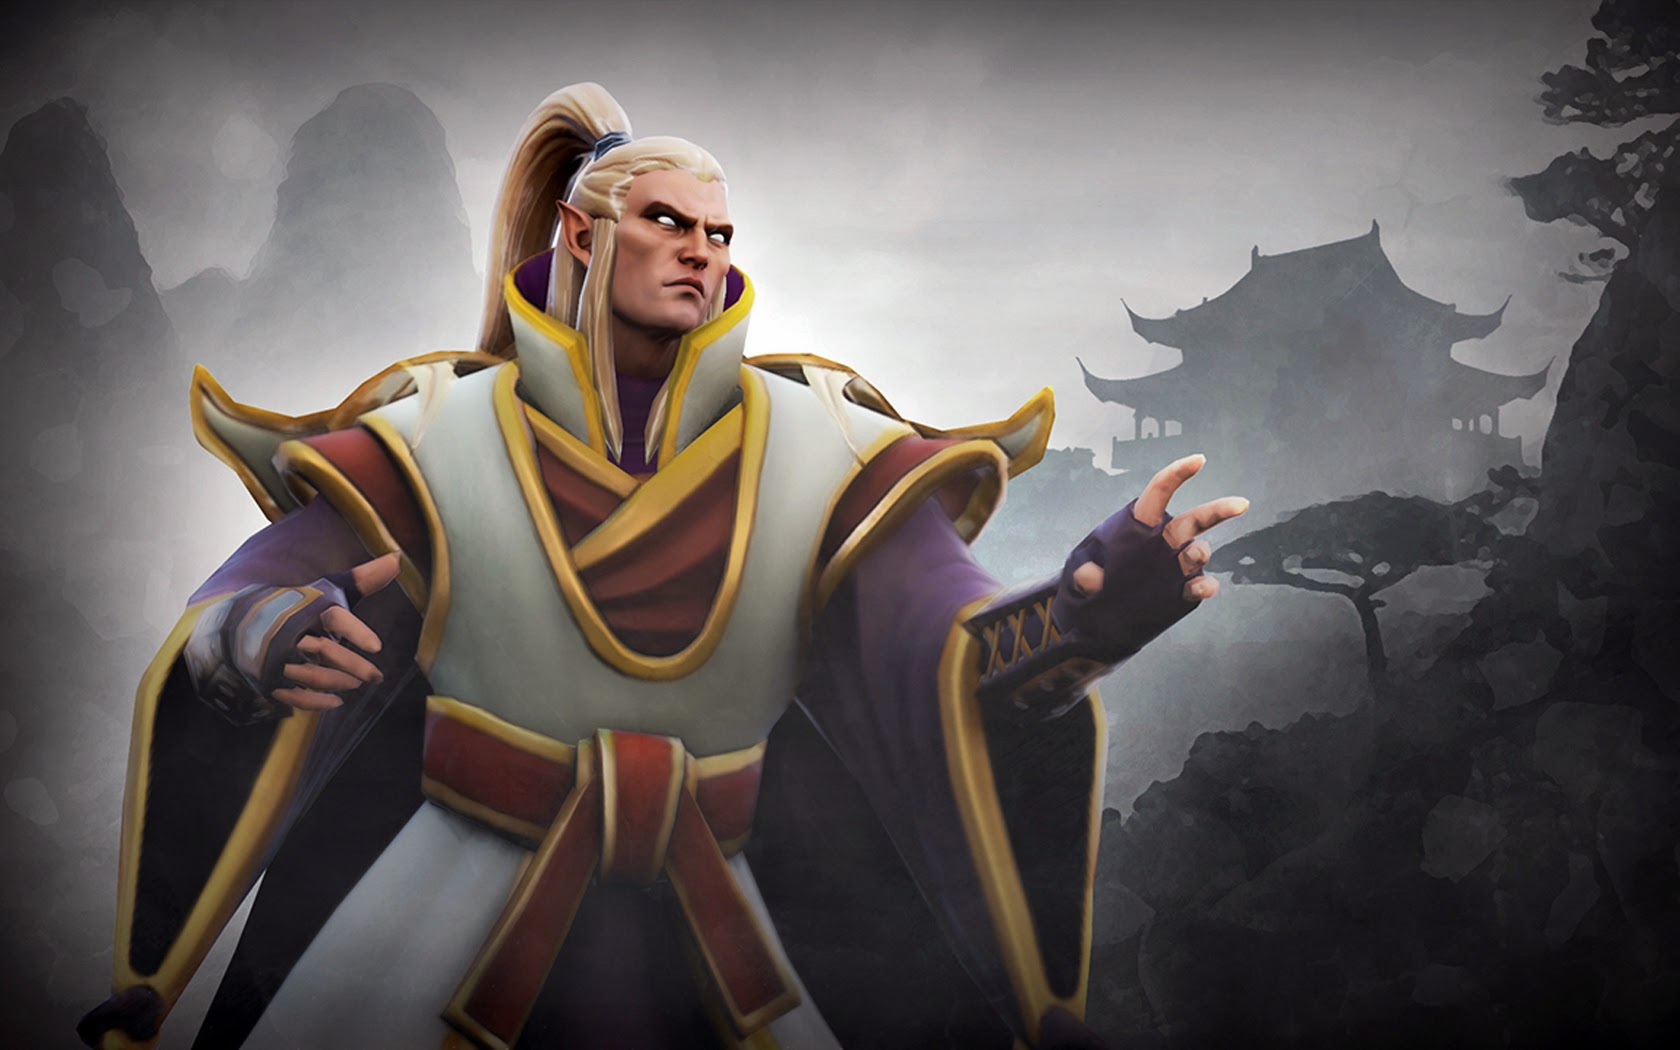 Invoker wallpapers Garbs of the Eastern Range Set